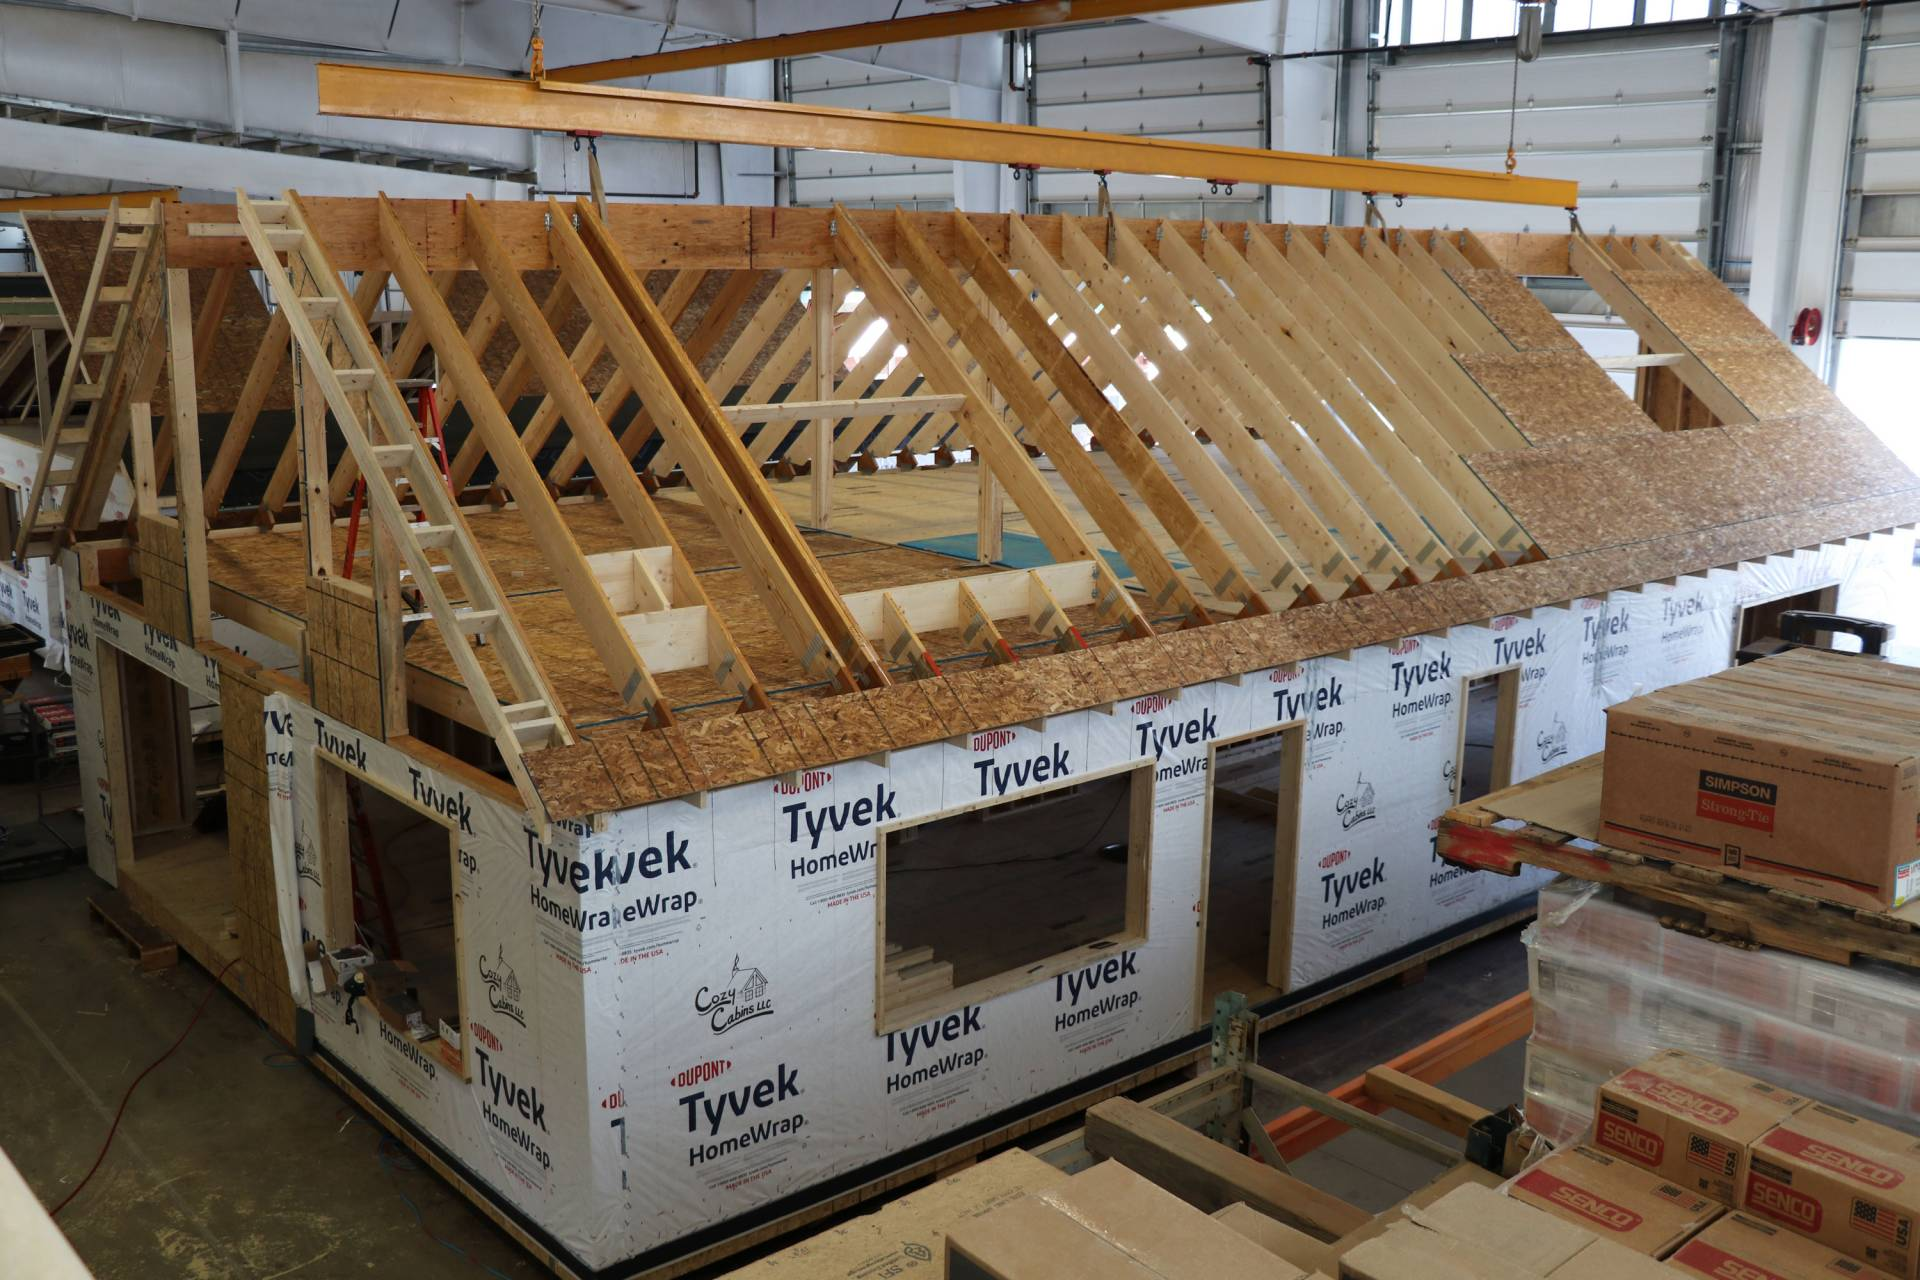 roof being put on modular log home in Lancaster warehouse